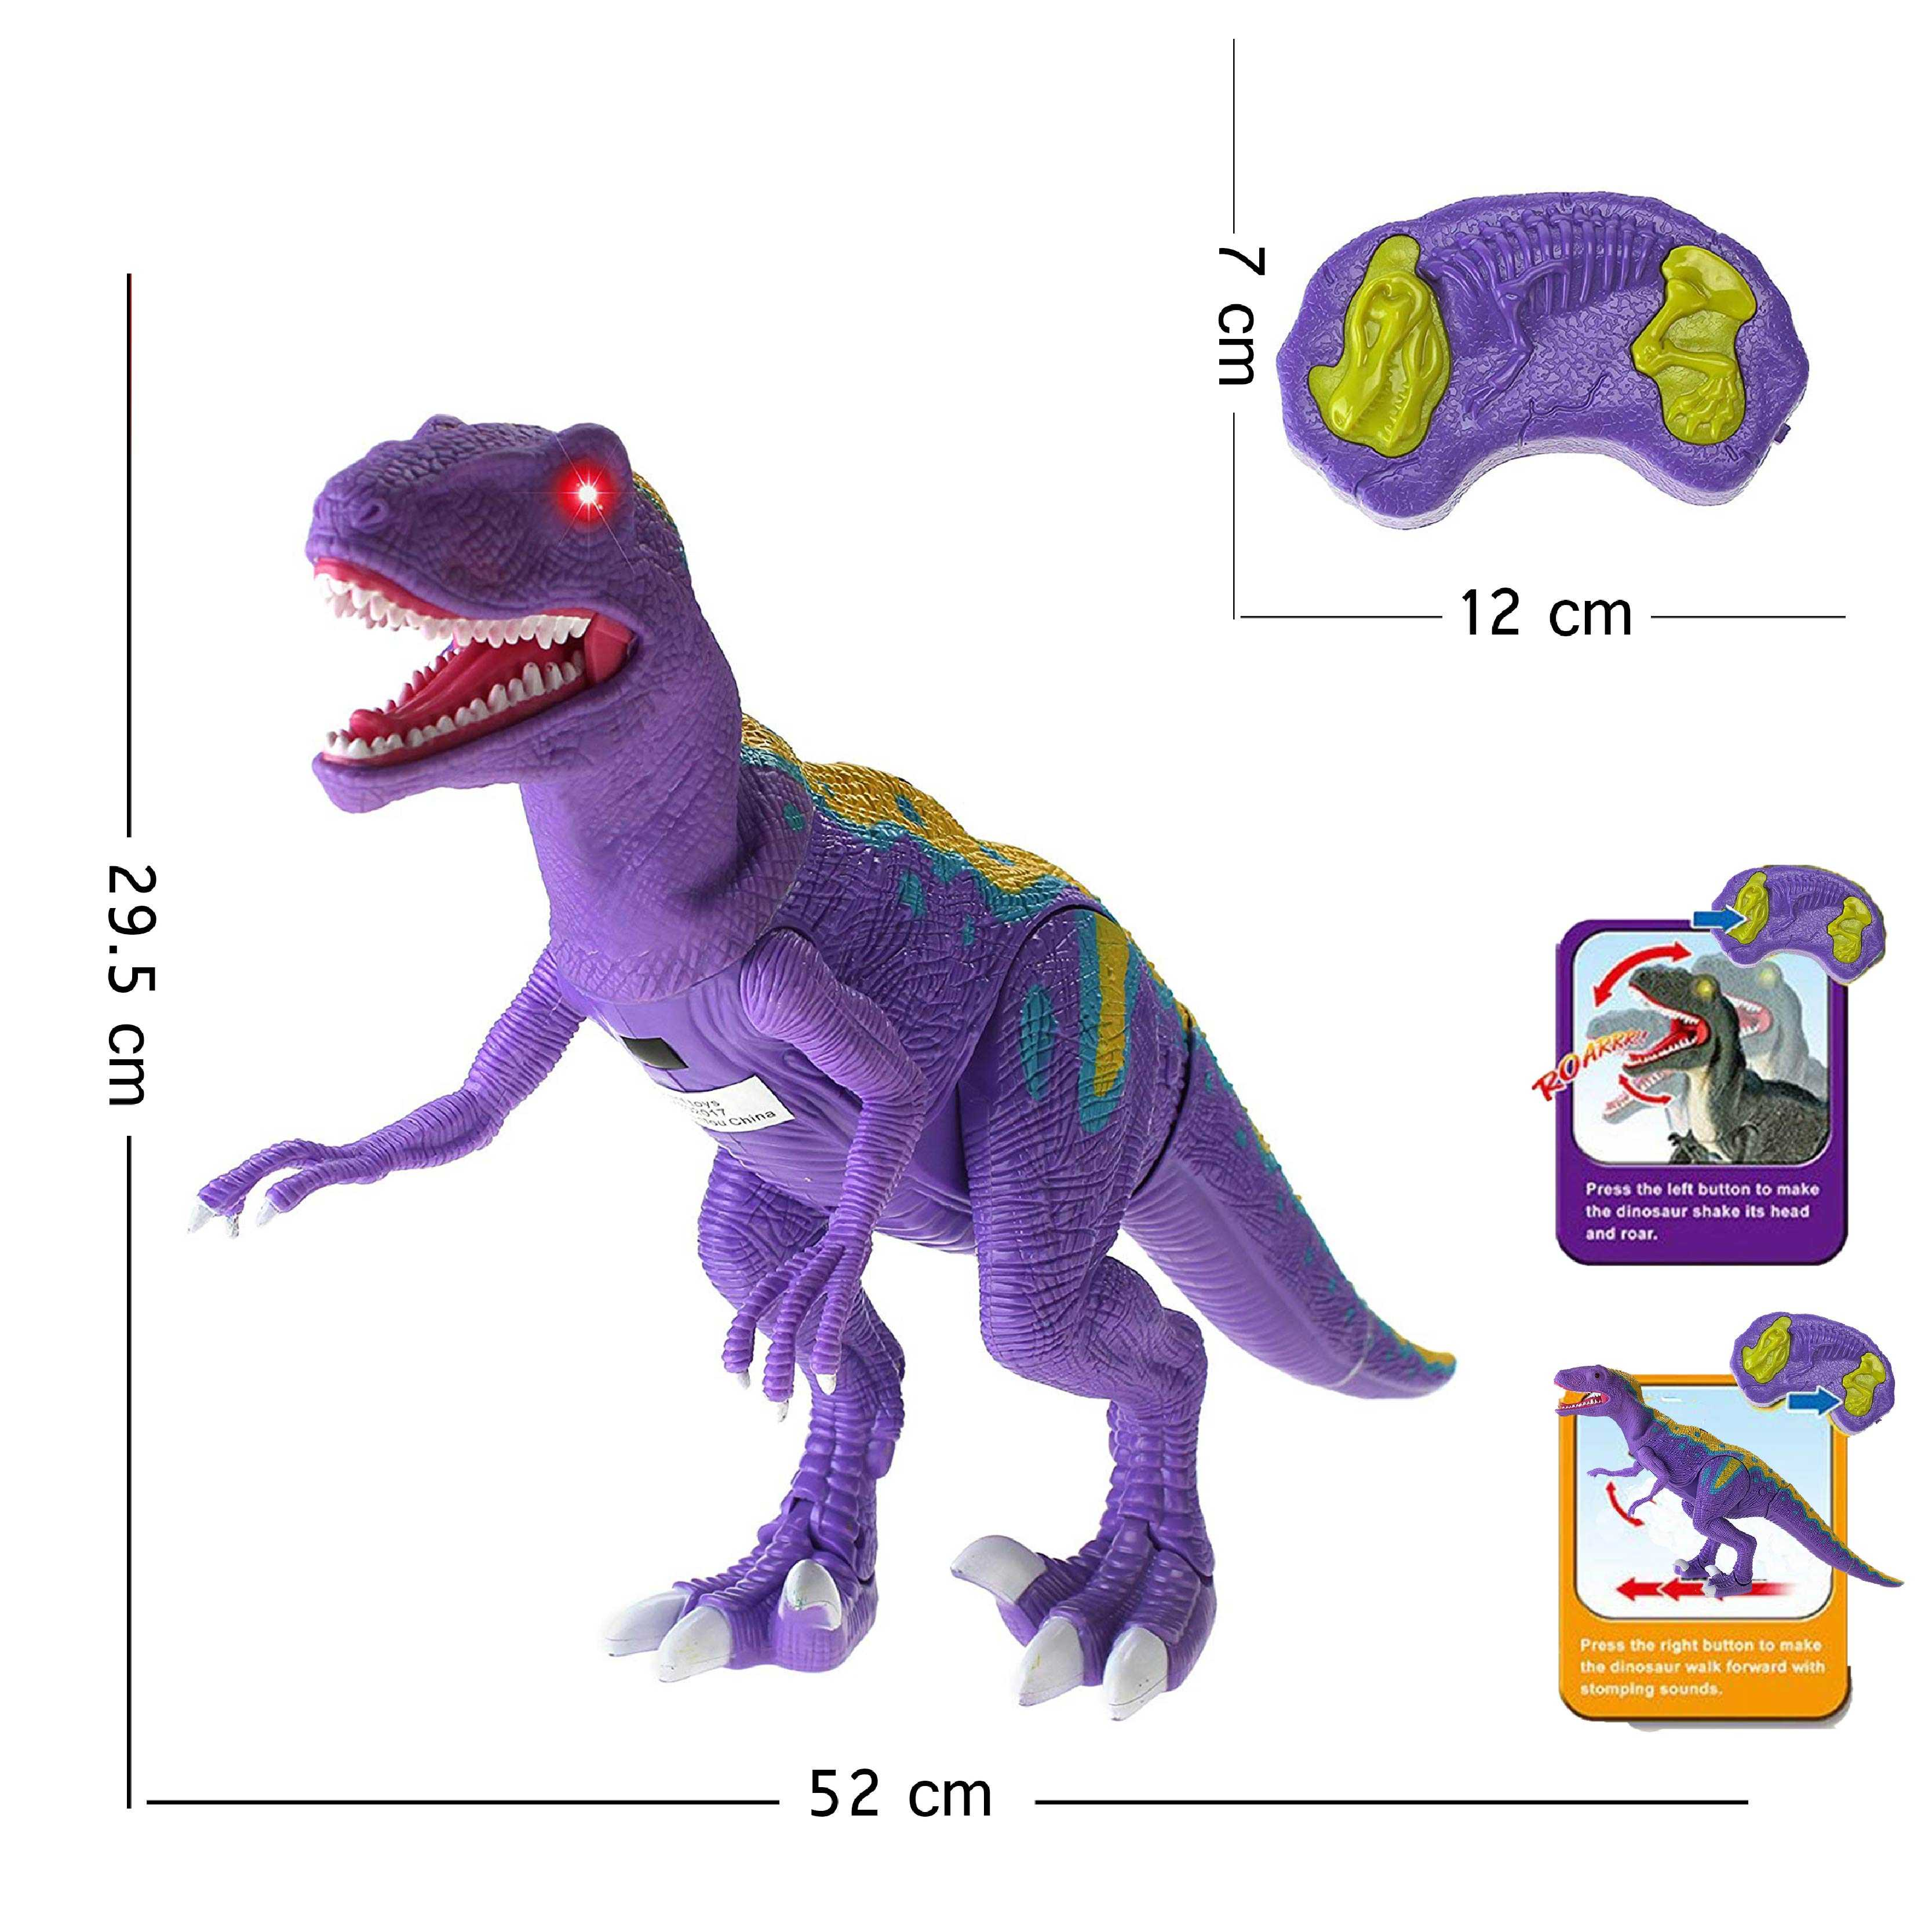 Walking+Series+Dinosaur+World+Raptor+Remote+Controlled+RC+Battery+Operated+Toy+Velociraptor+Figure+Shaking+Head+Walking+Movement+Light+Up+Eyes+%26+Sounds